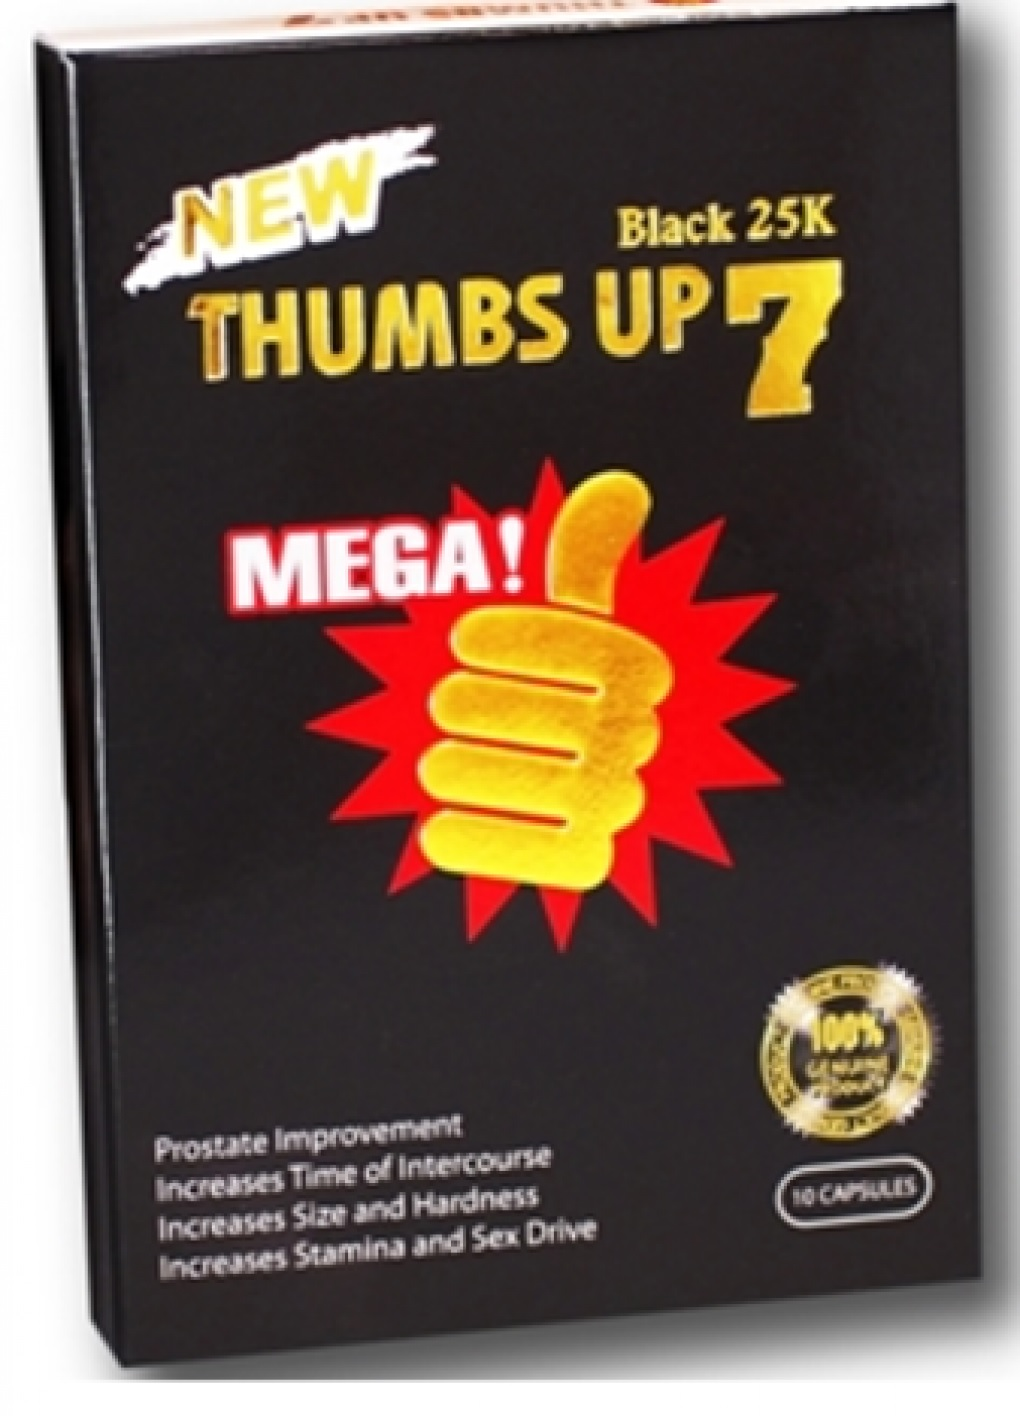 Image of the illigal product: Thumbs Up 7 (Black)